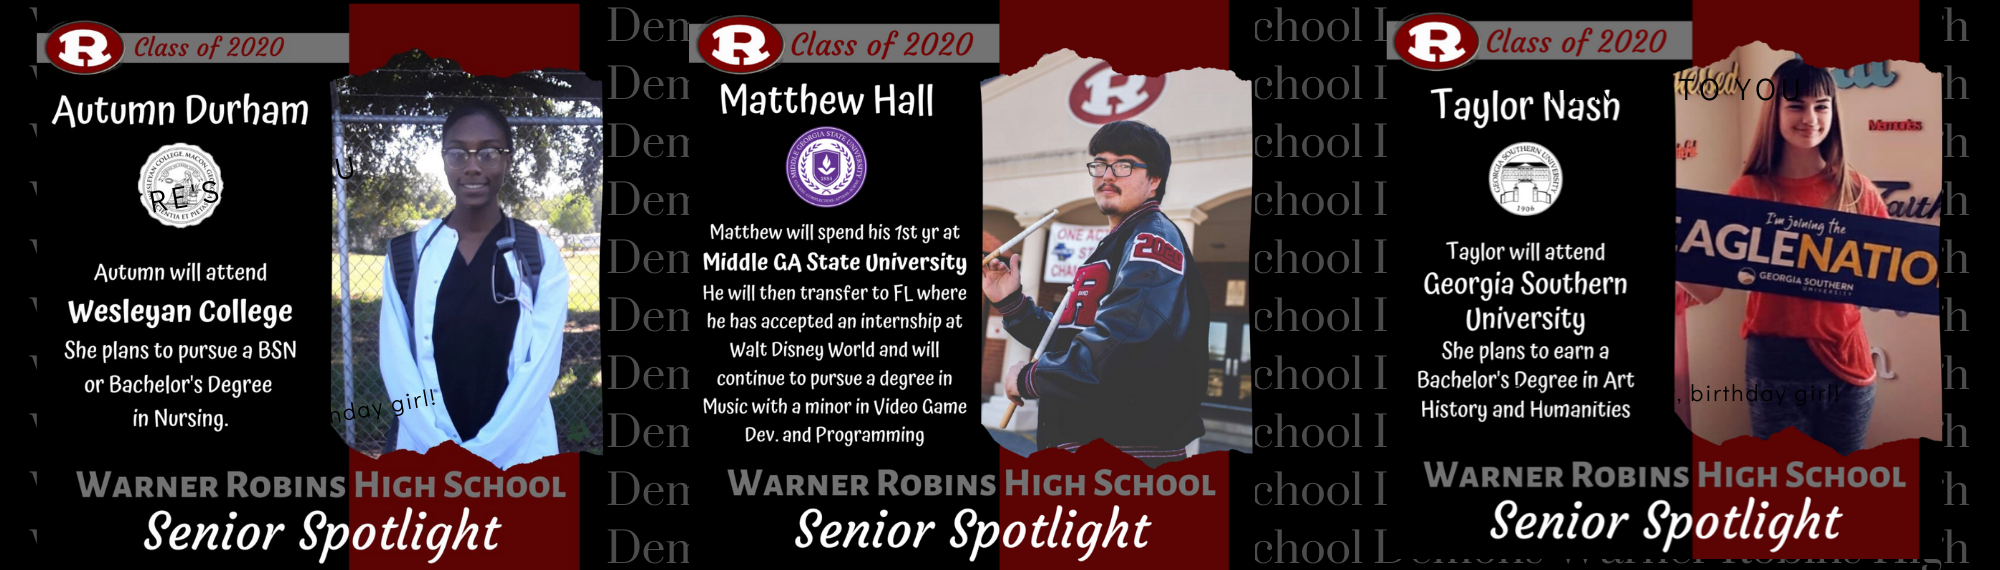 Senior Spotlight Durham